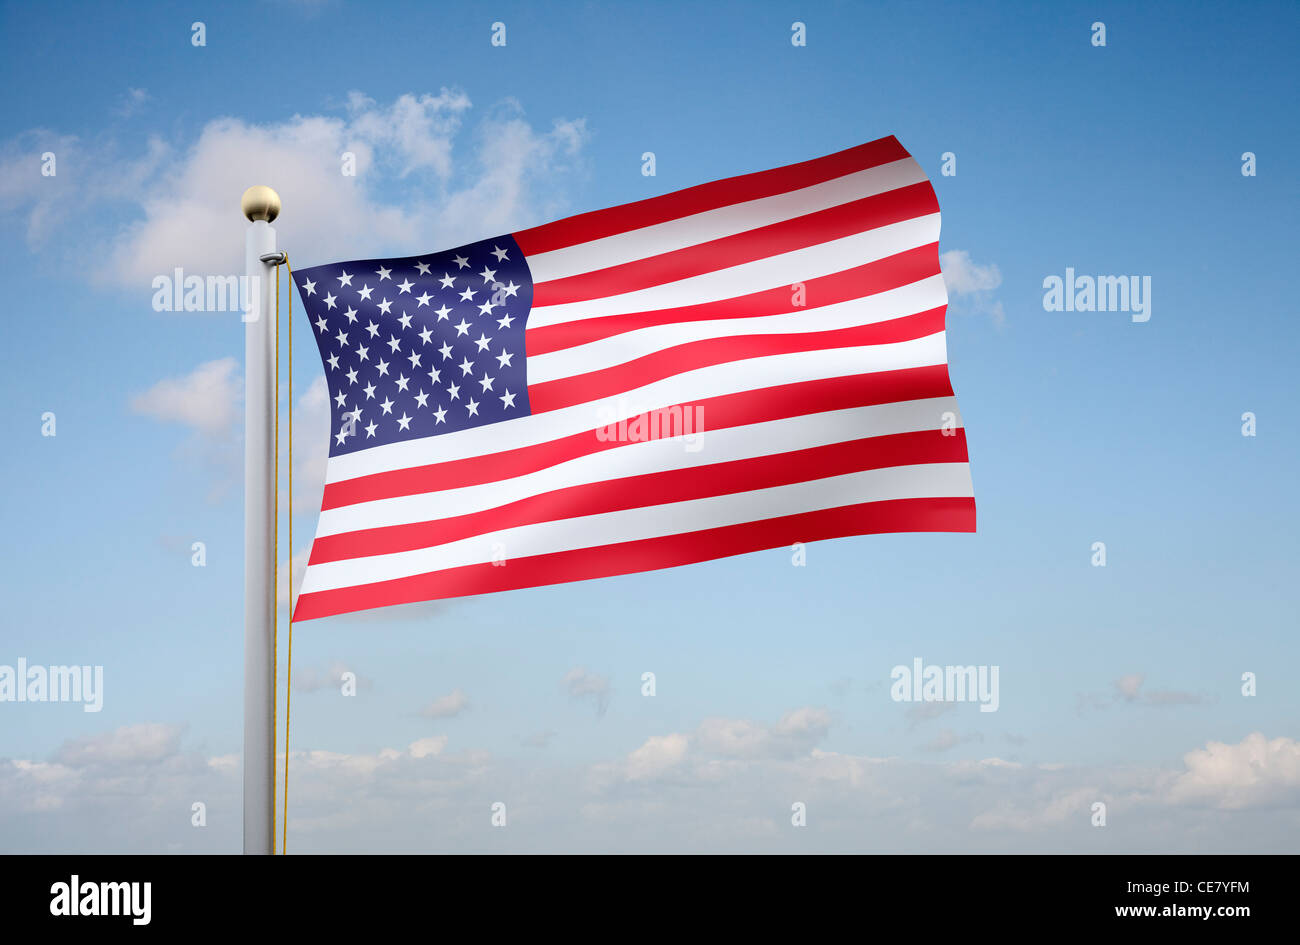 Stars and Stripes - the American flag - Stock Image